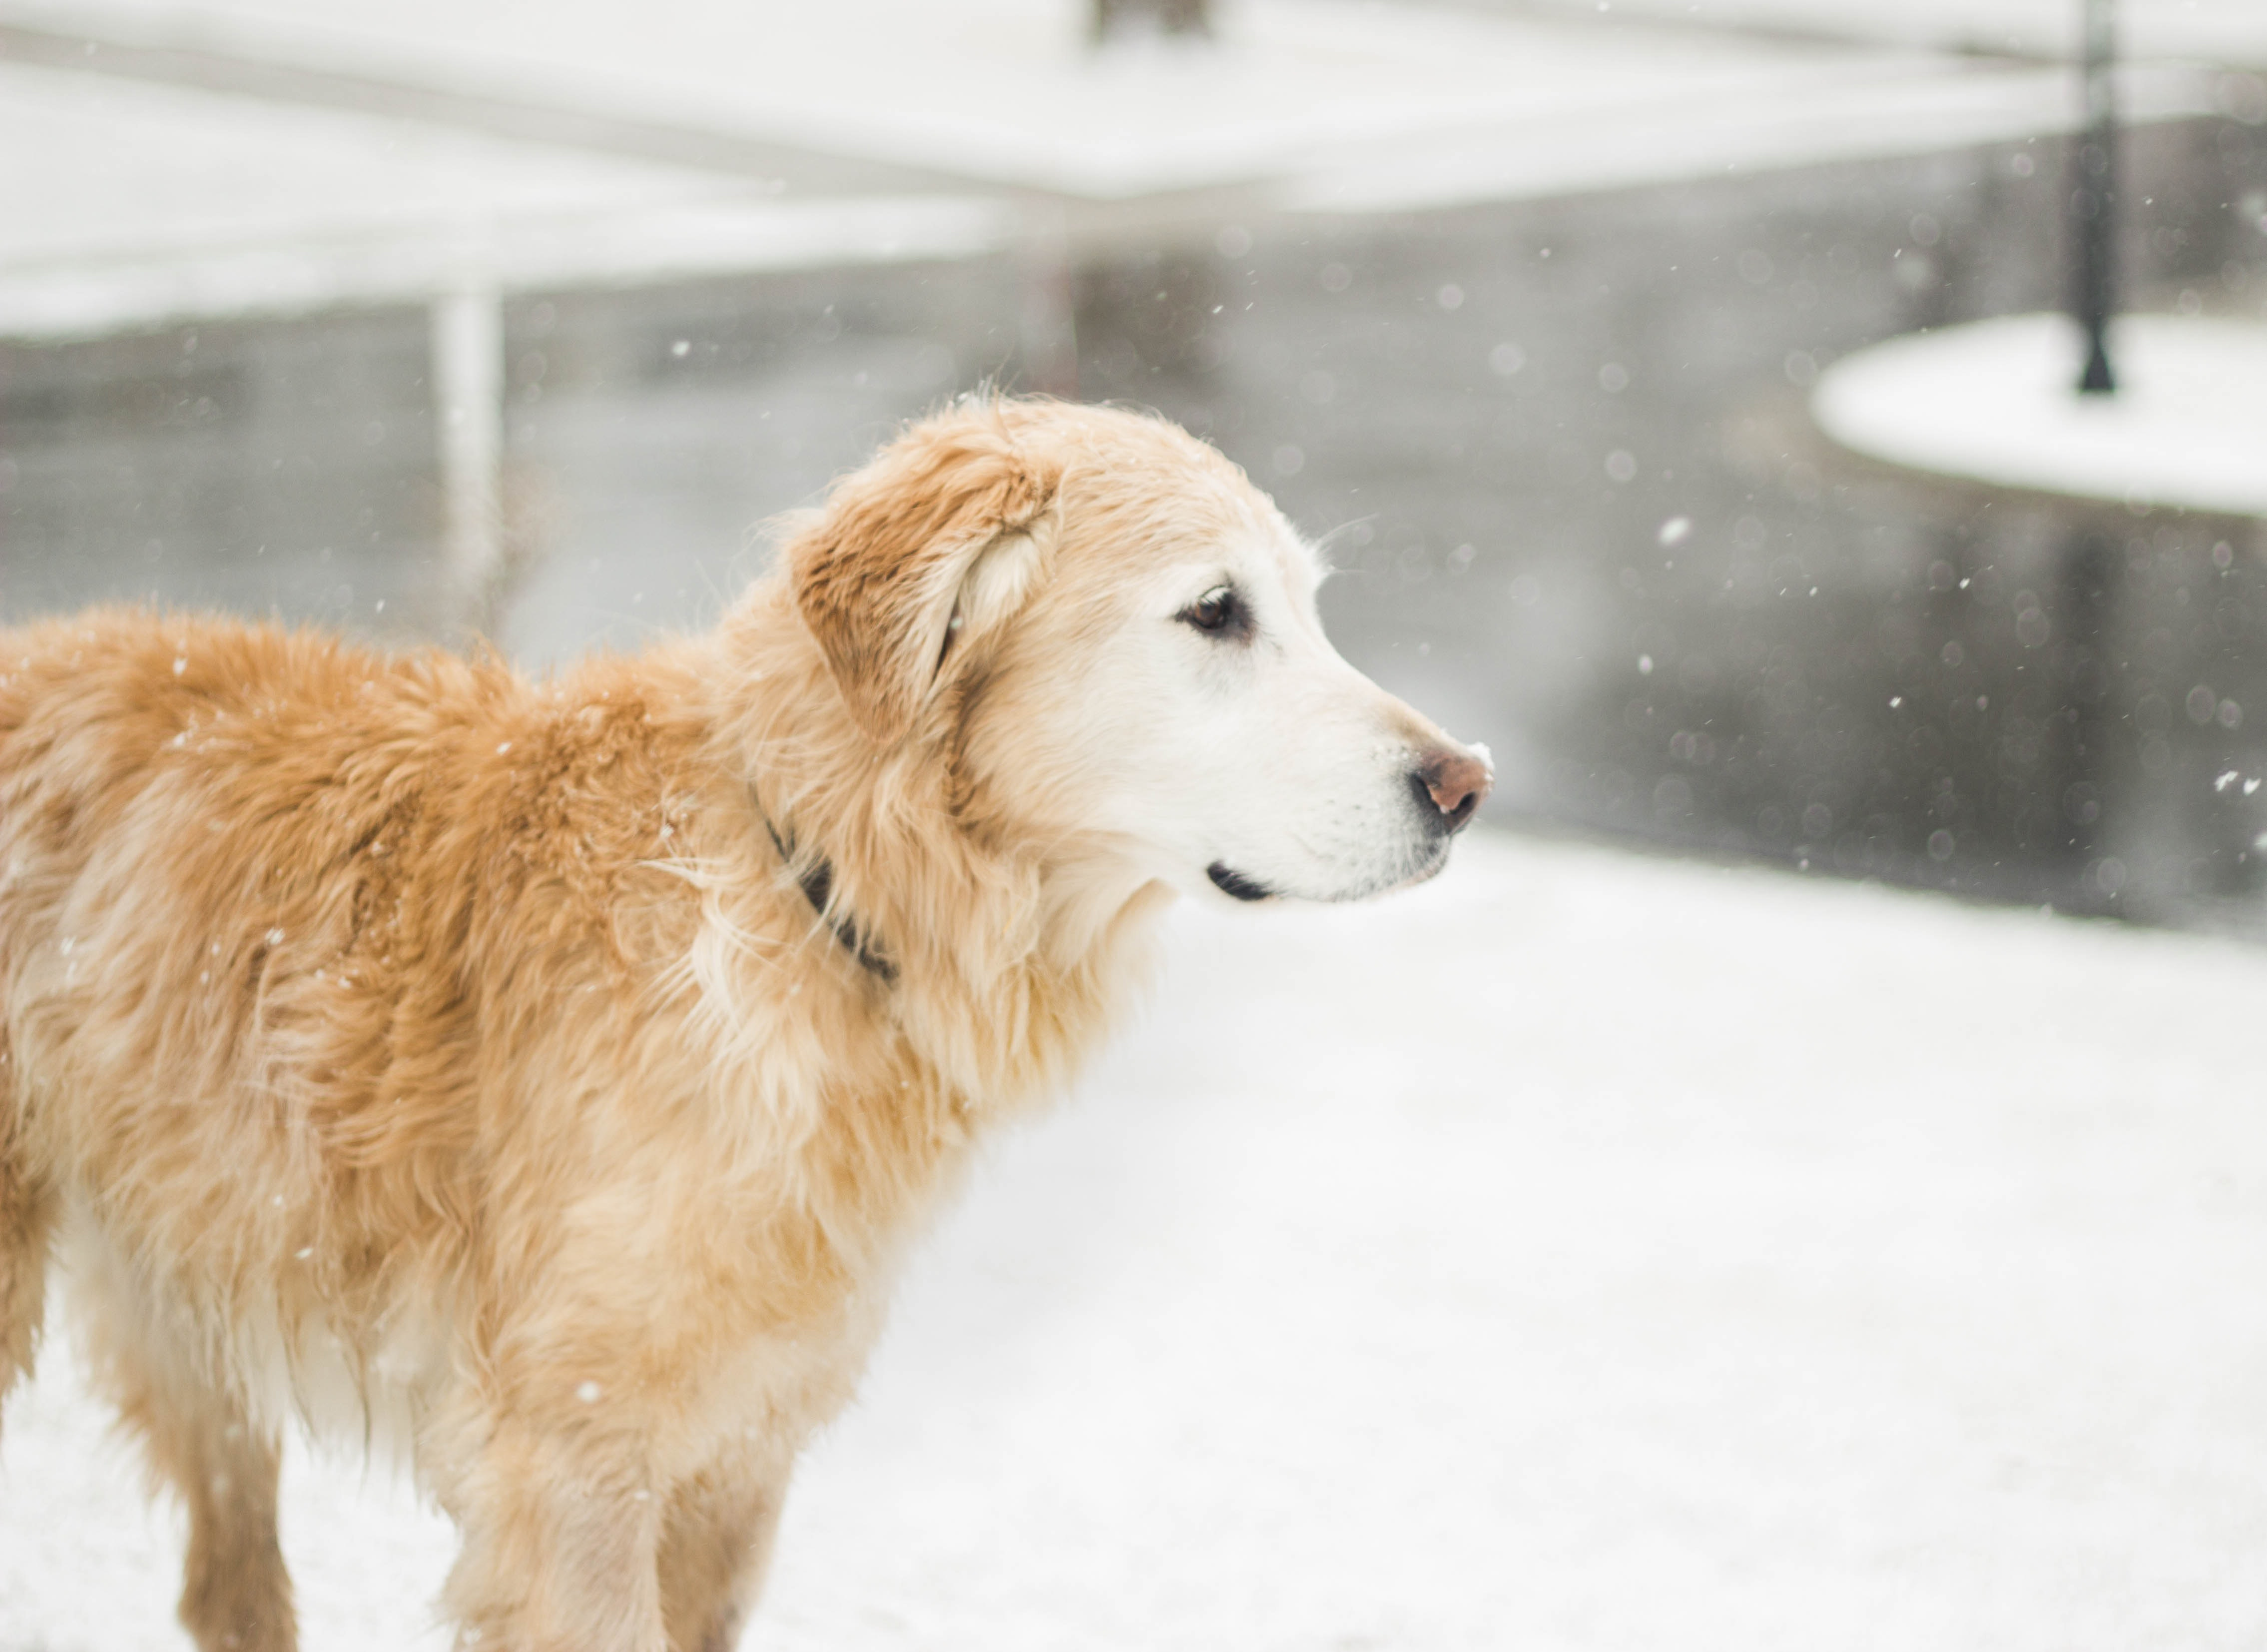 Dogs in the cold weather